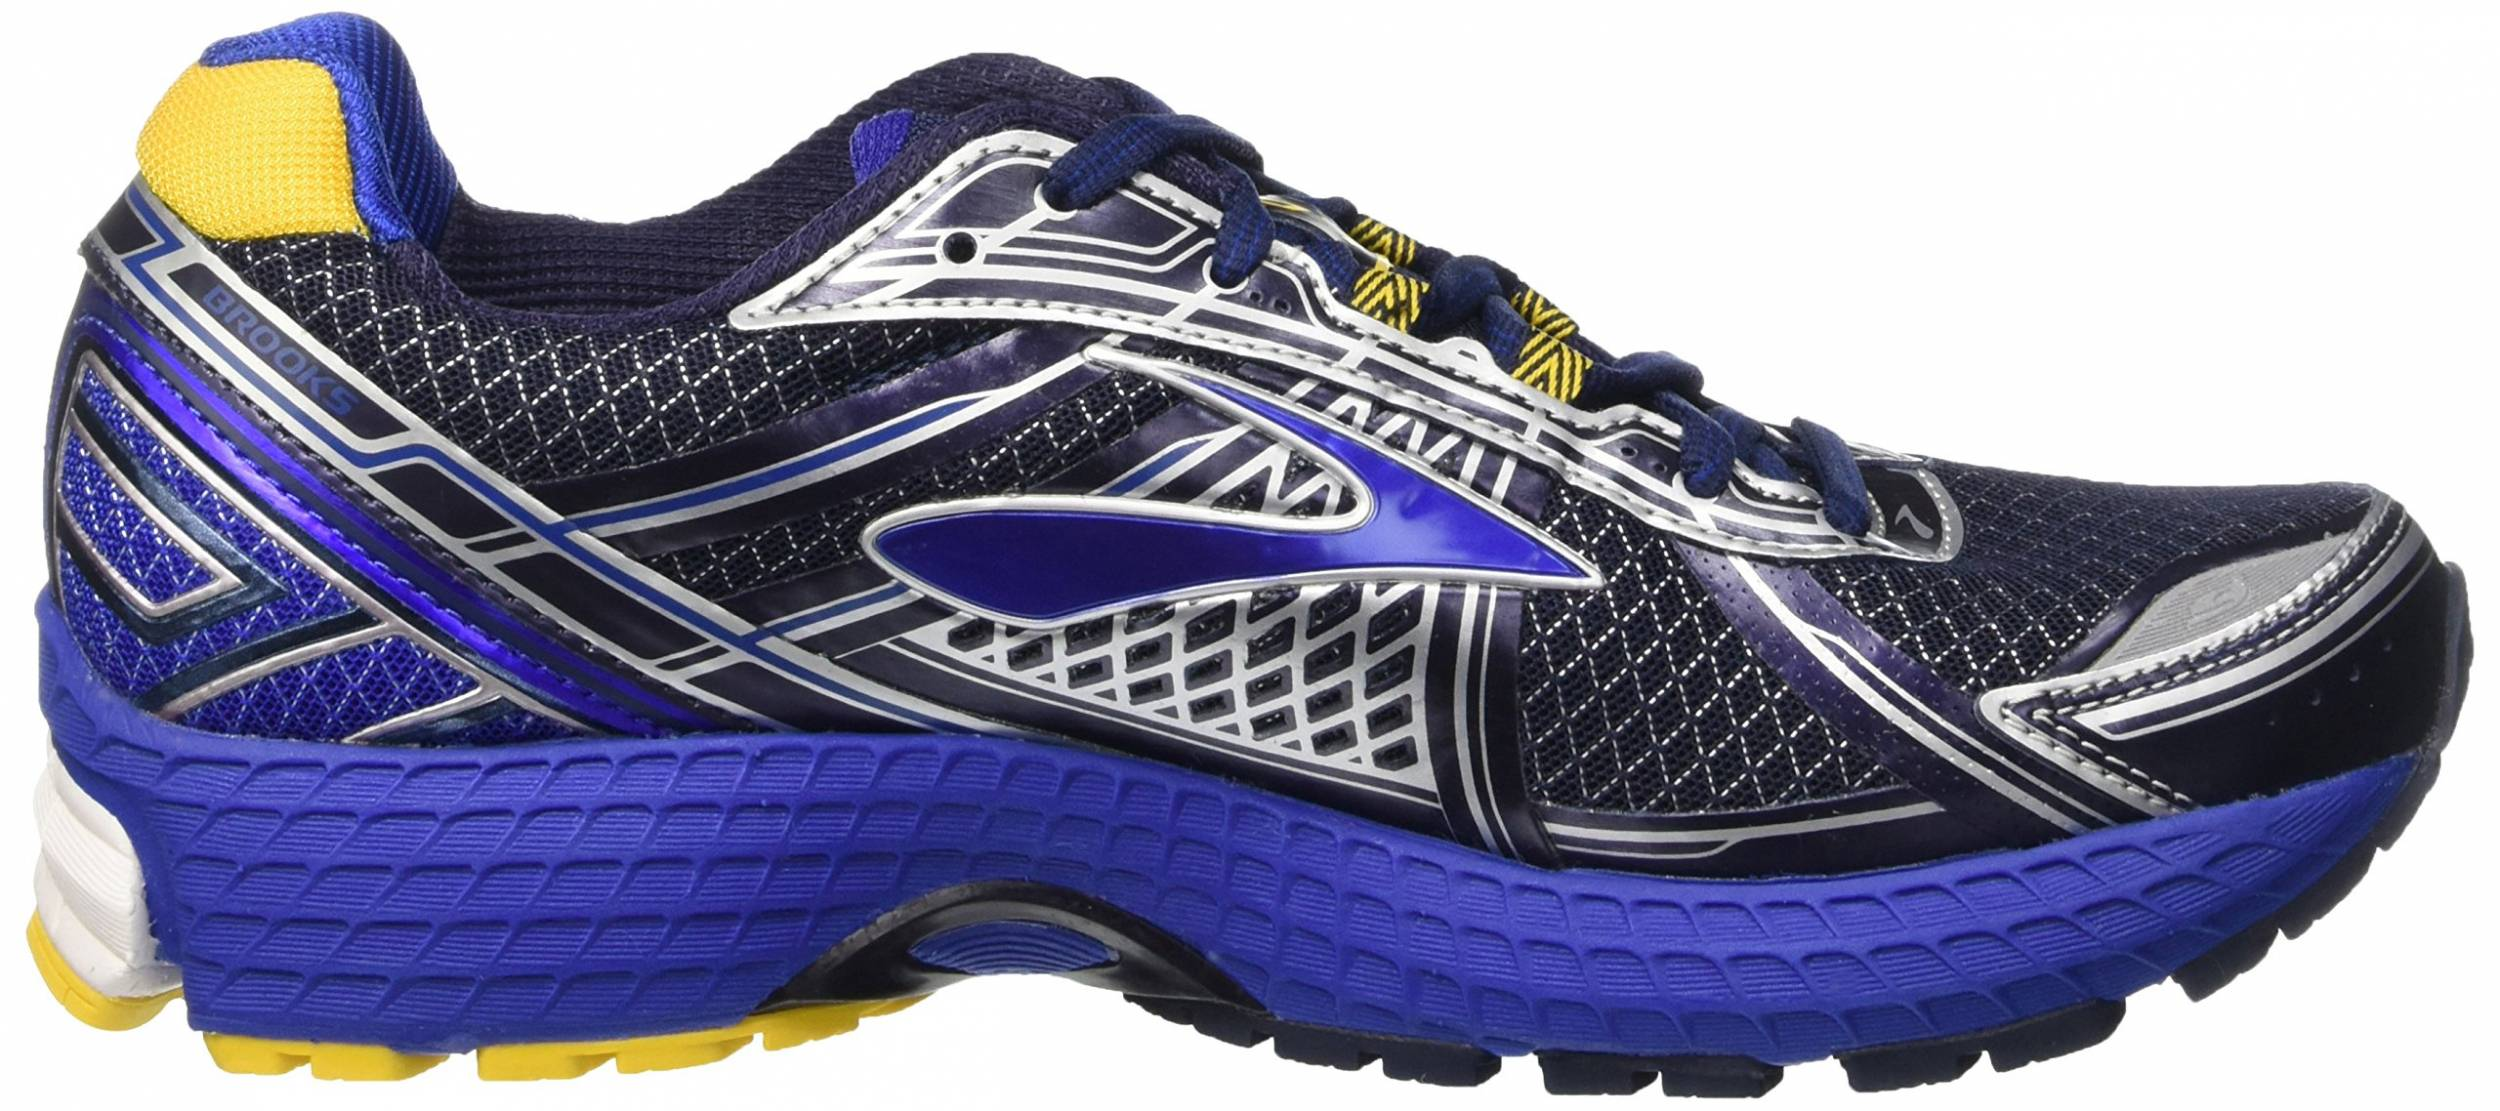 $200 + Review of Brooks Defyance 9